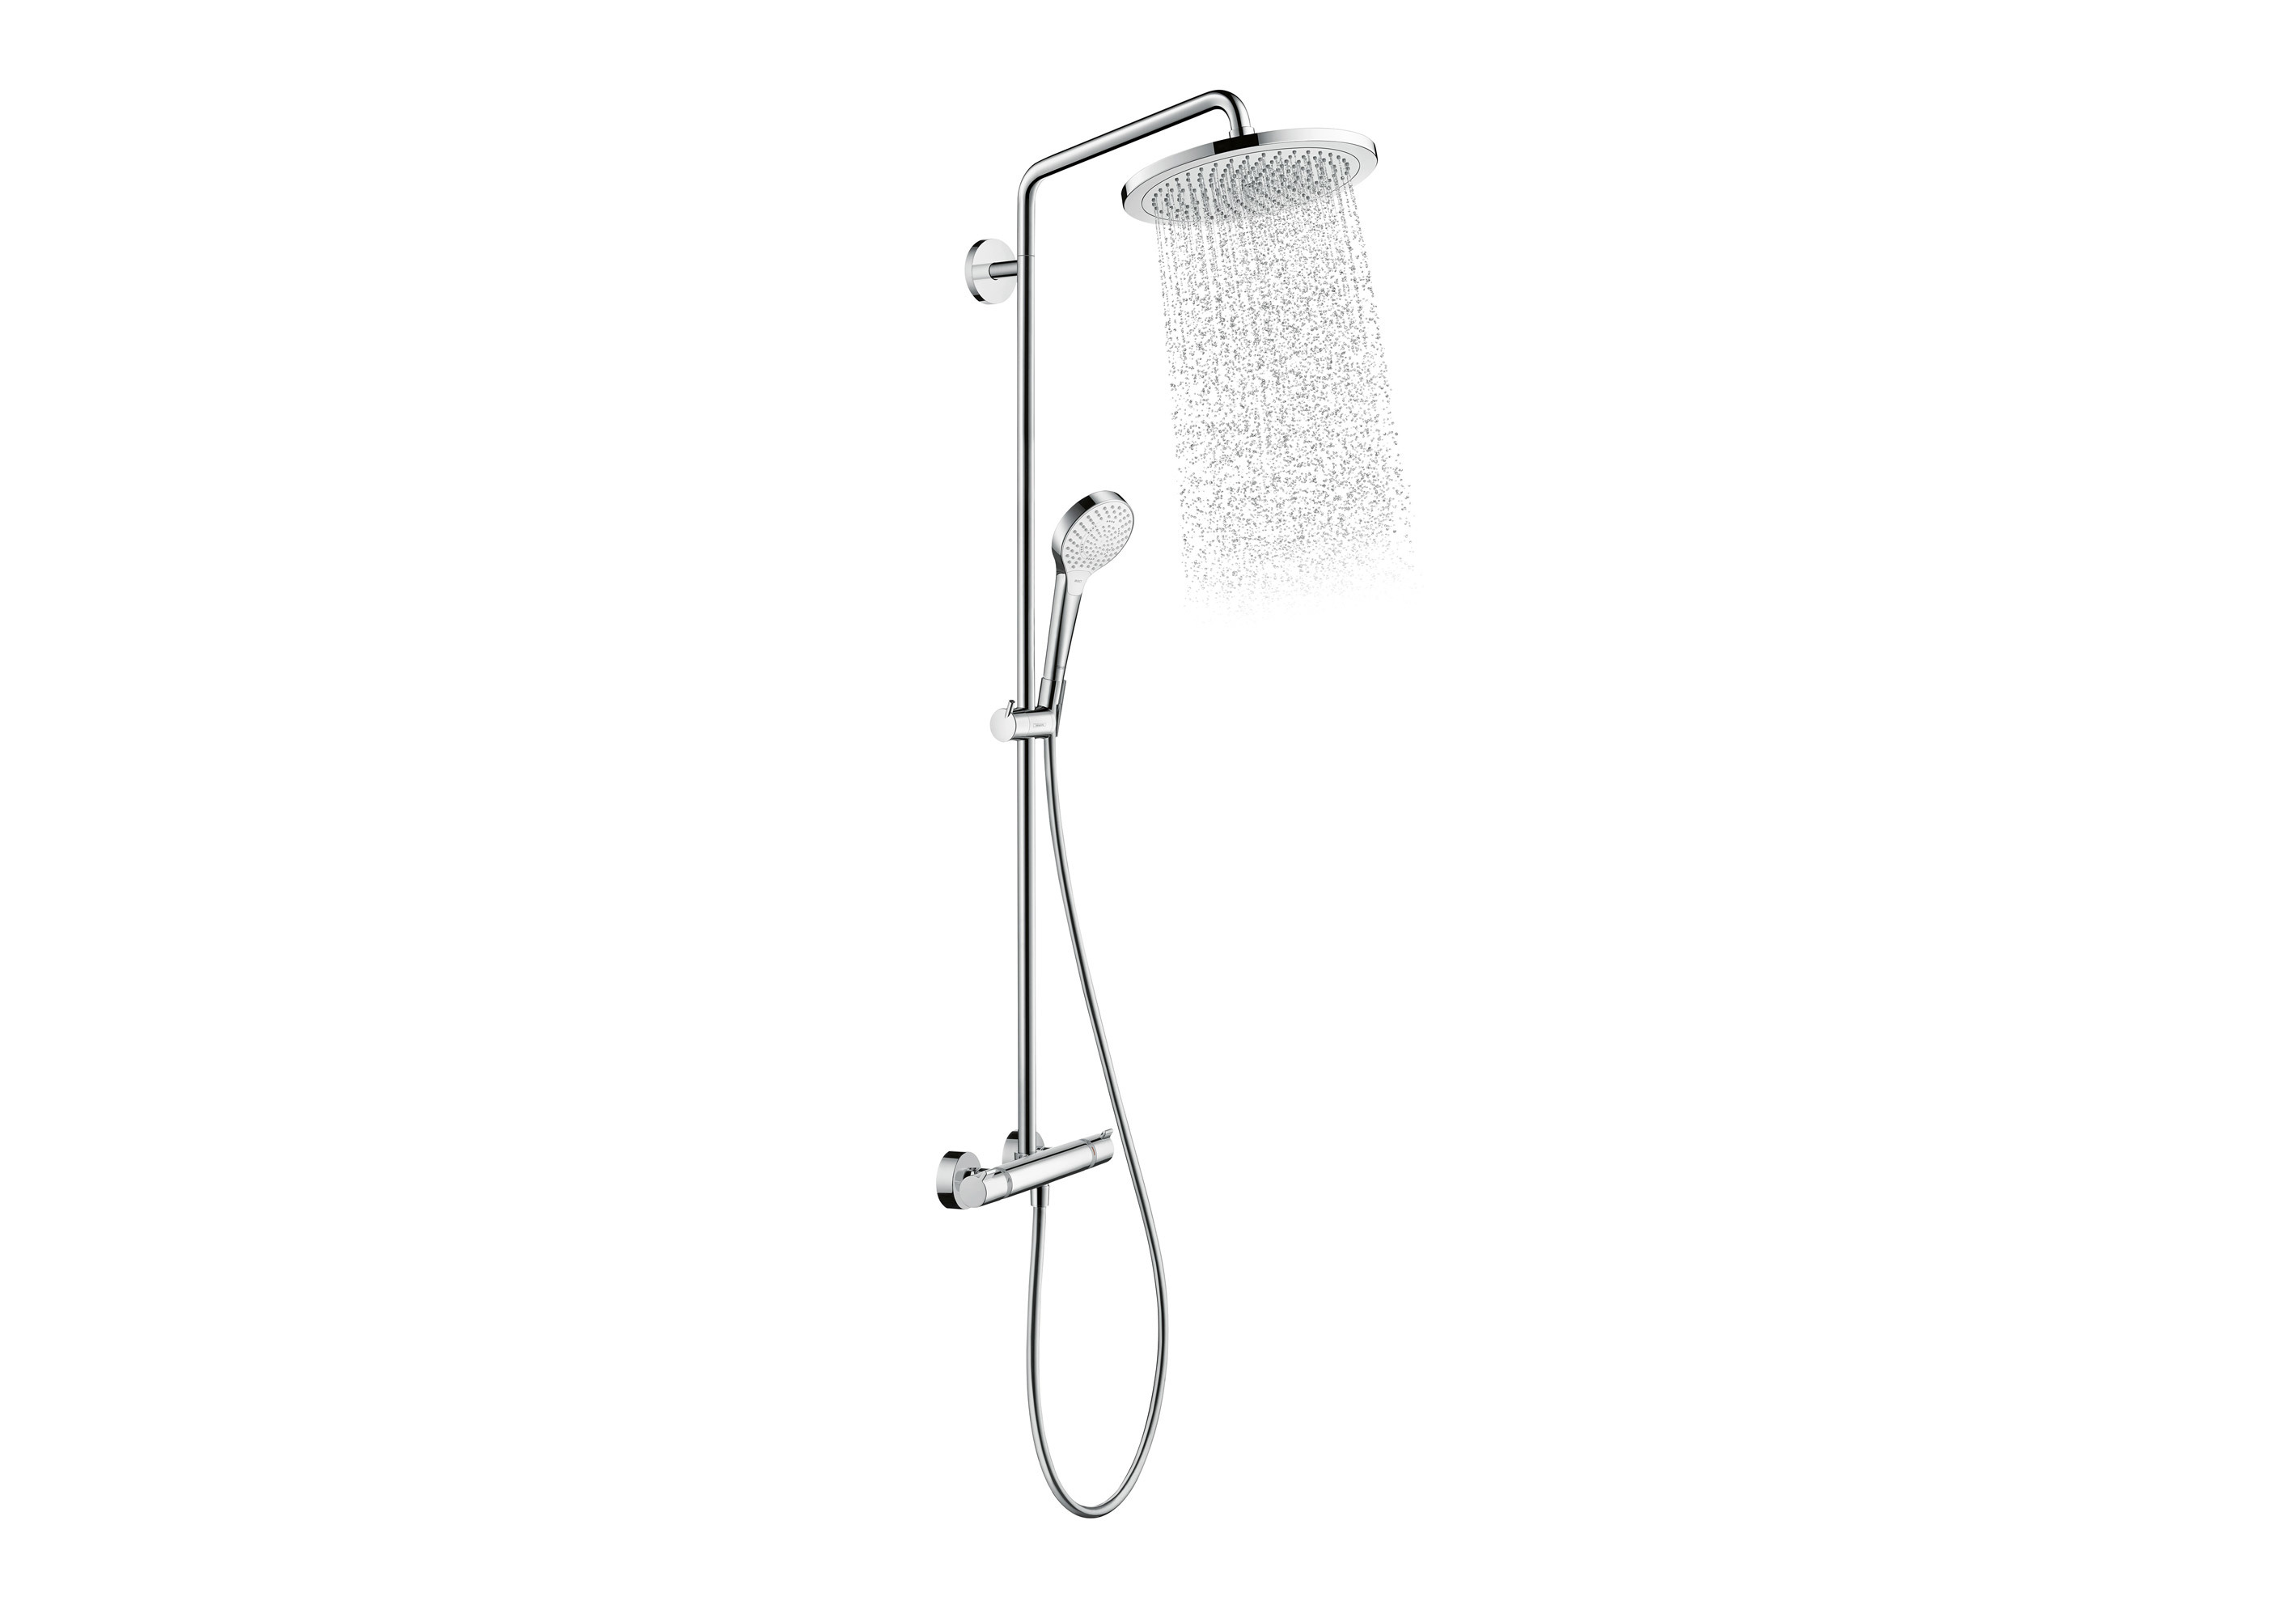 croma 280 select showerpipe mixer by hansgrohe stylepark. Black Bedroom Furniture Sets. Home Design Ideas